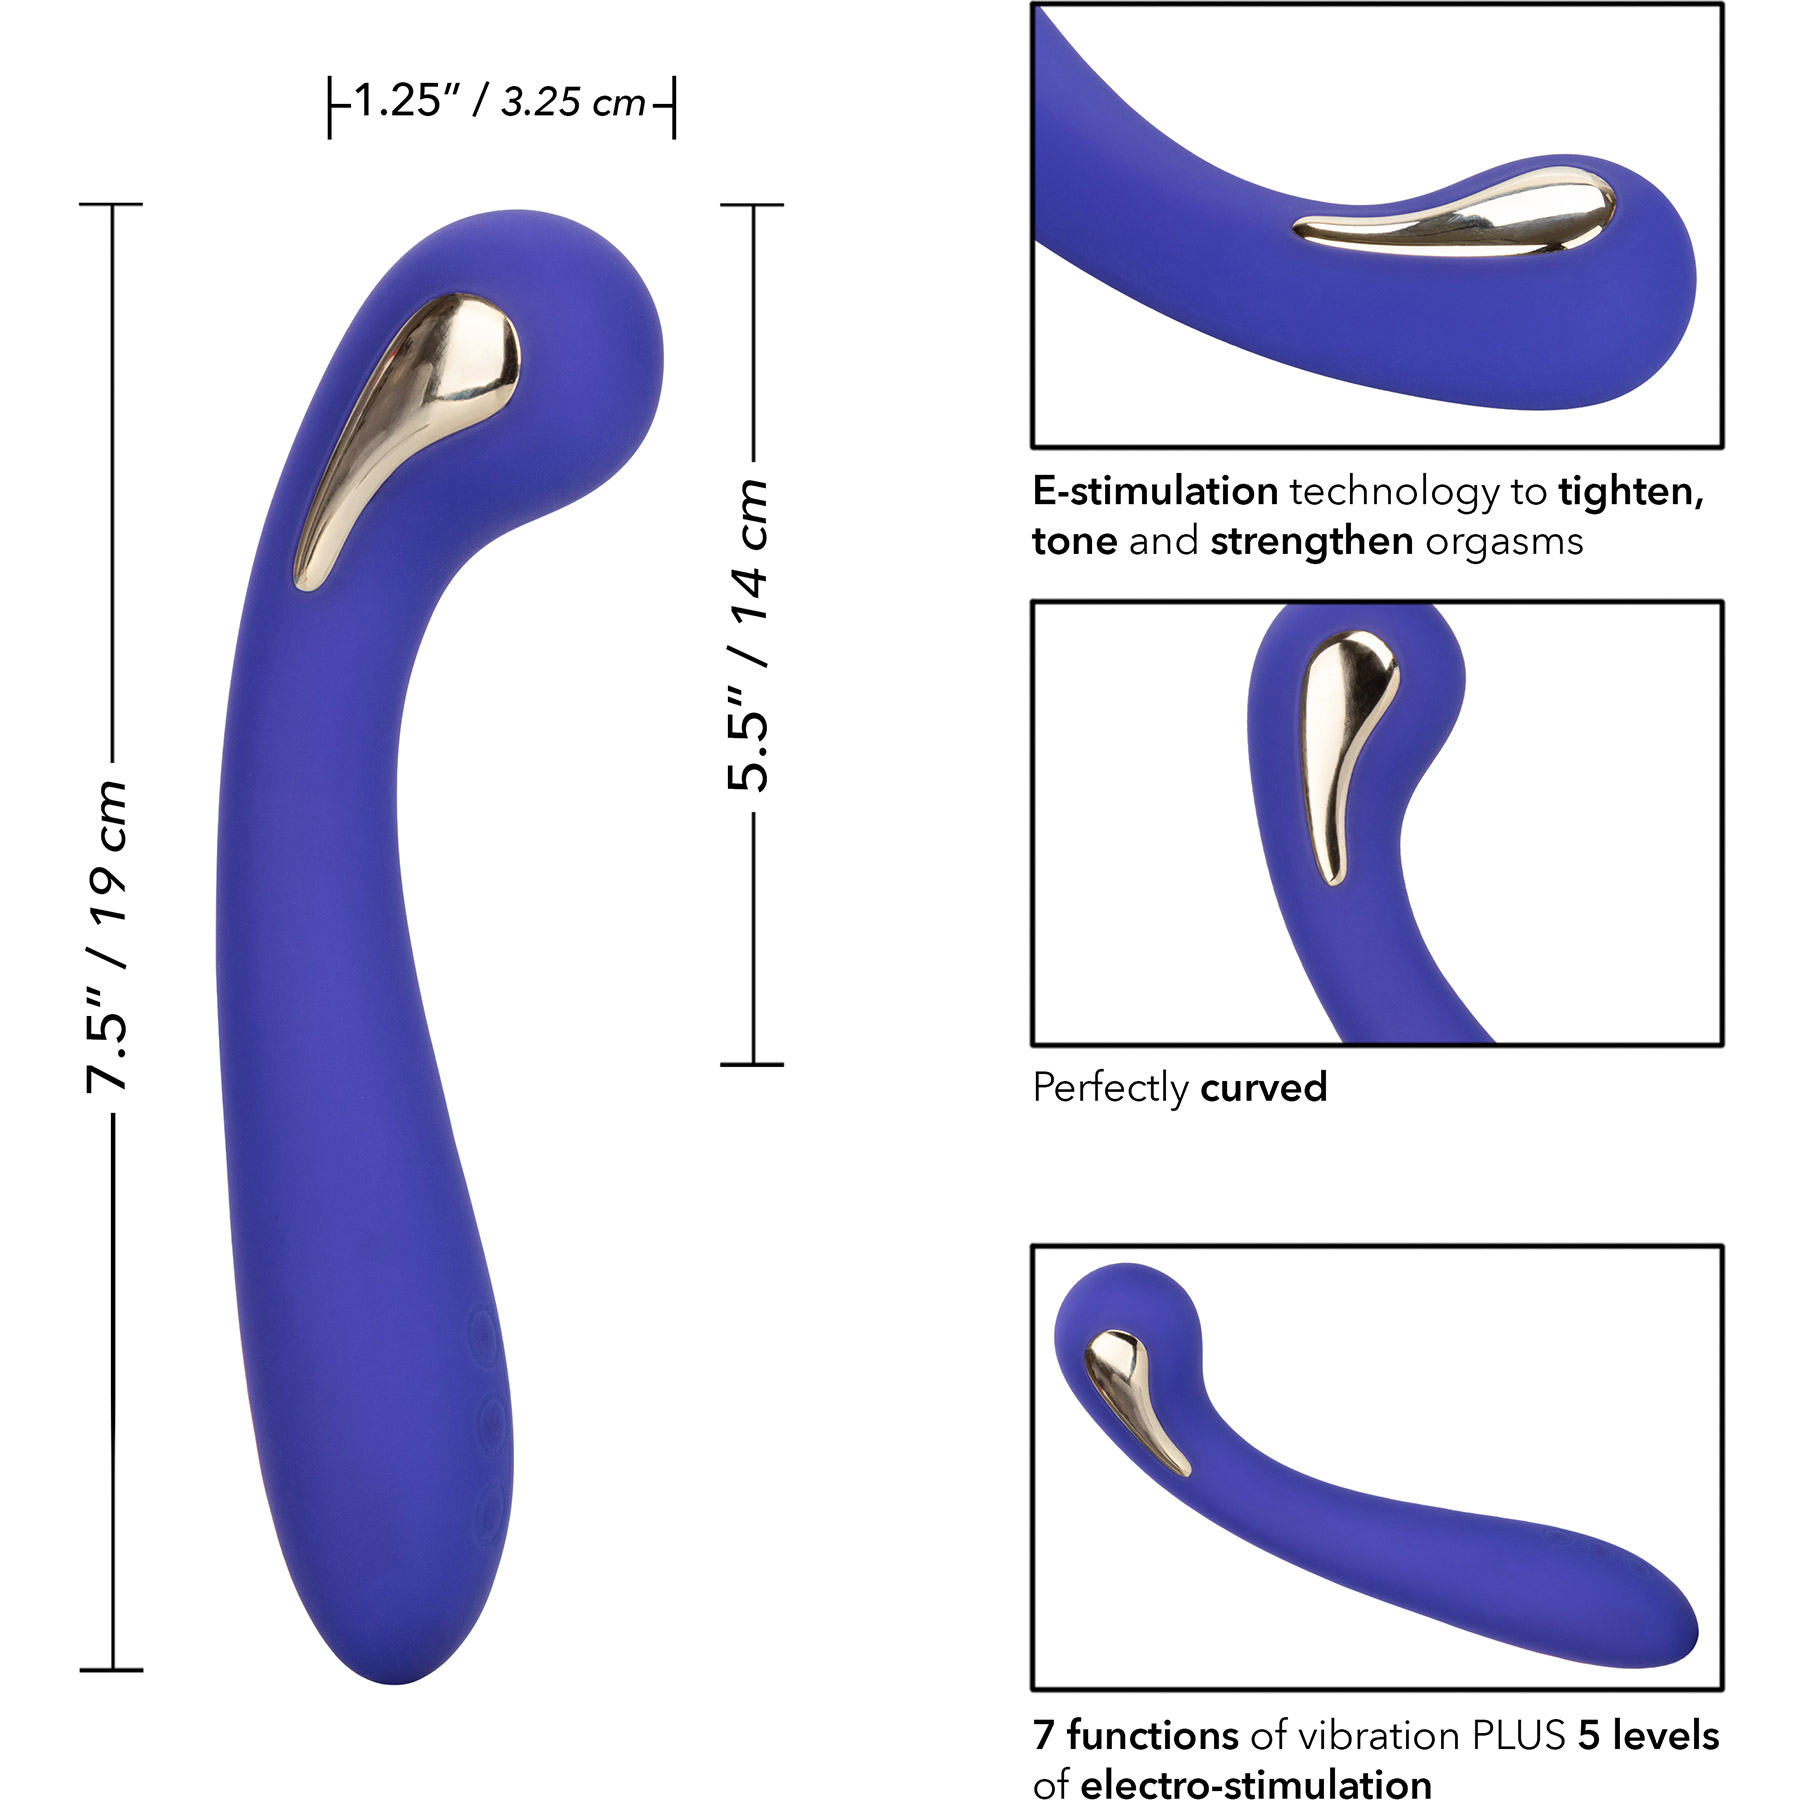 Impulse Intimate E-Stimulator Petite G Wand G-Spot Vibrator - Measurements